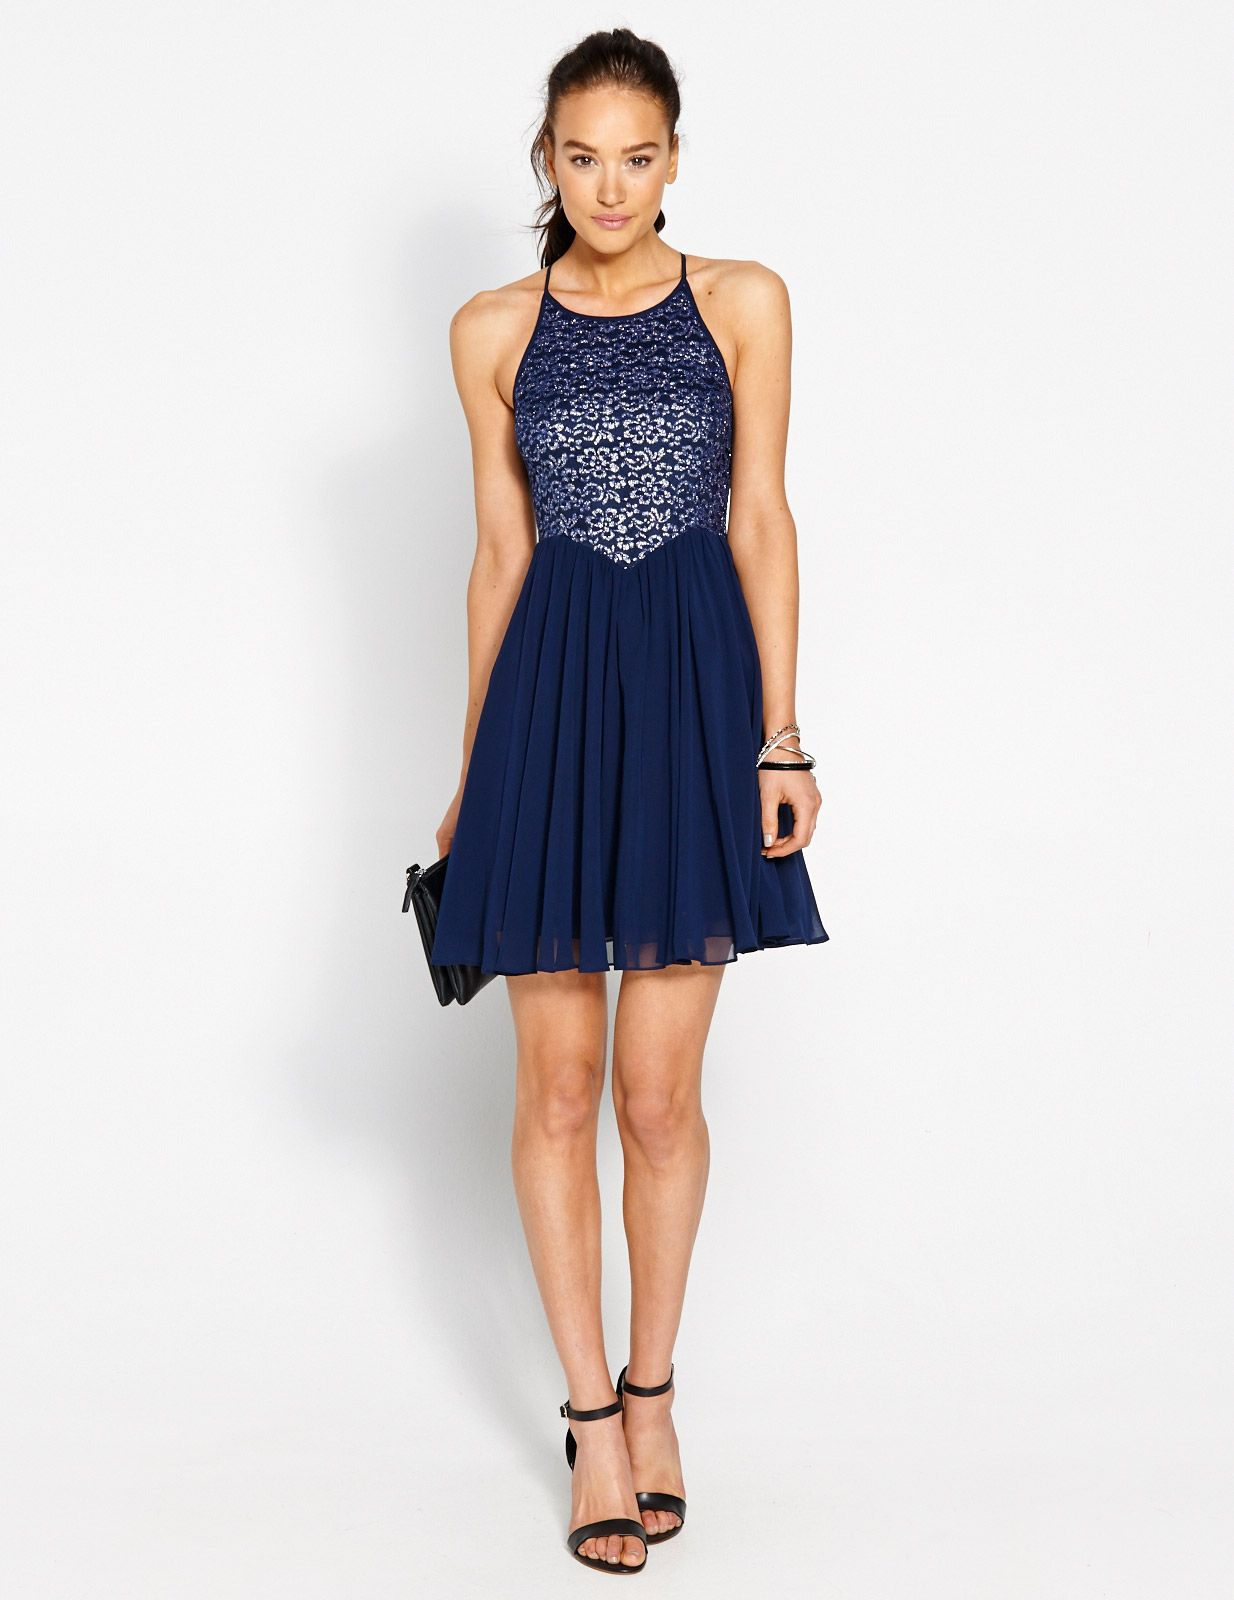 Image for Audrey Fit N Flare Dress from Dotti NZ | Formal Dress ...